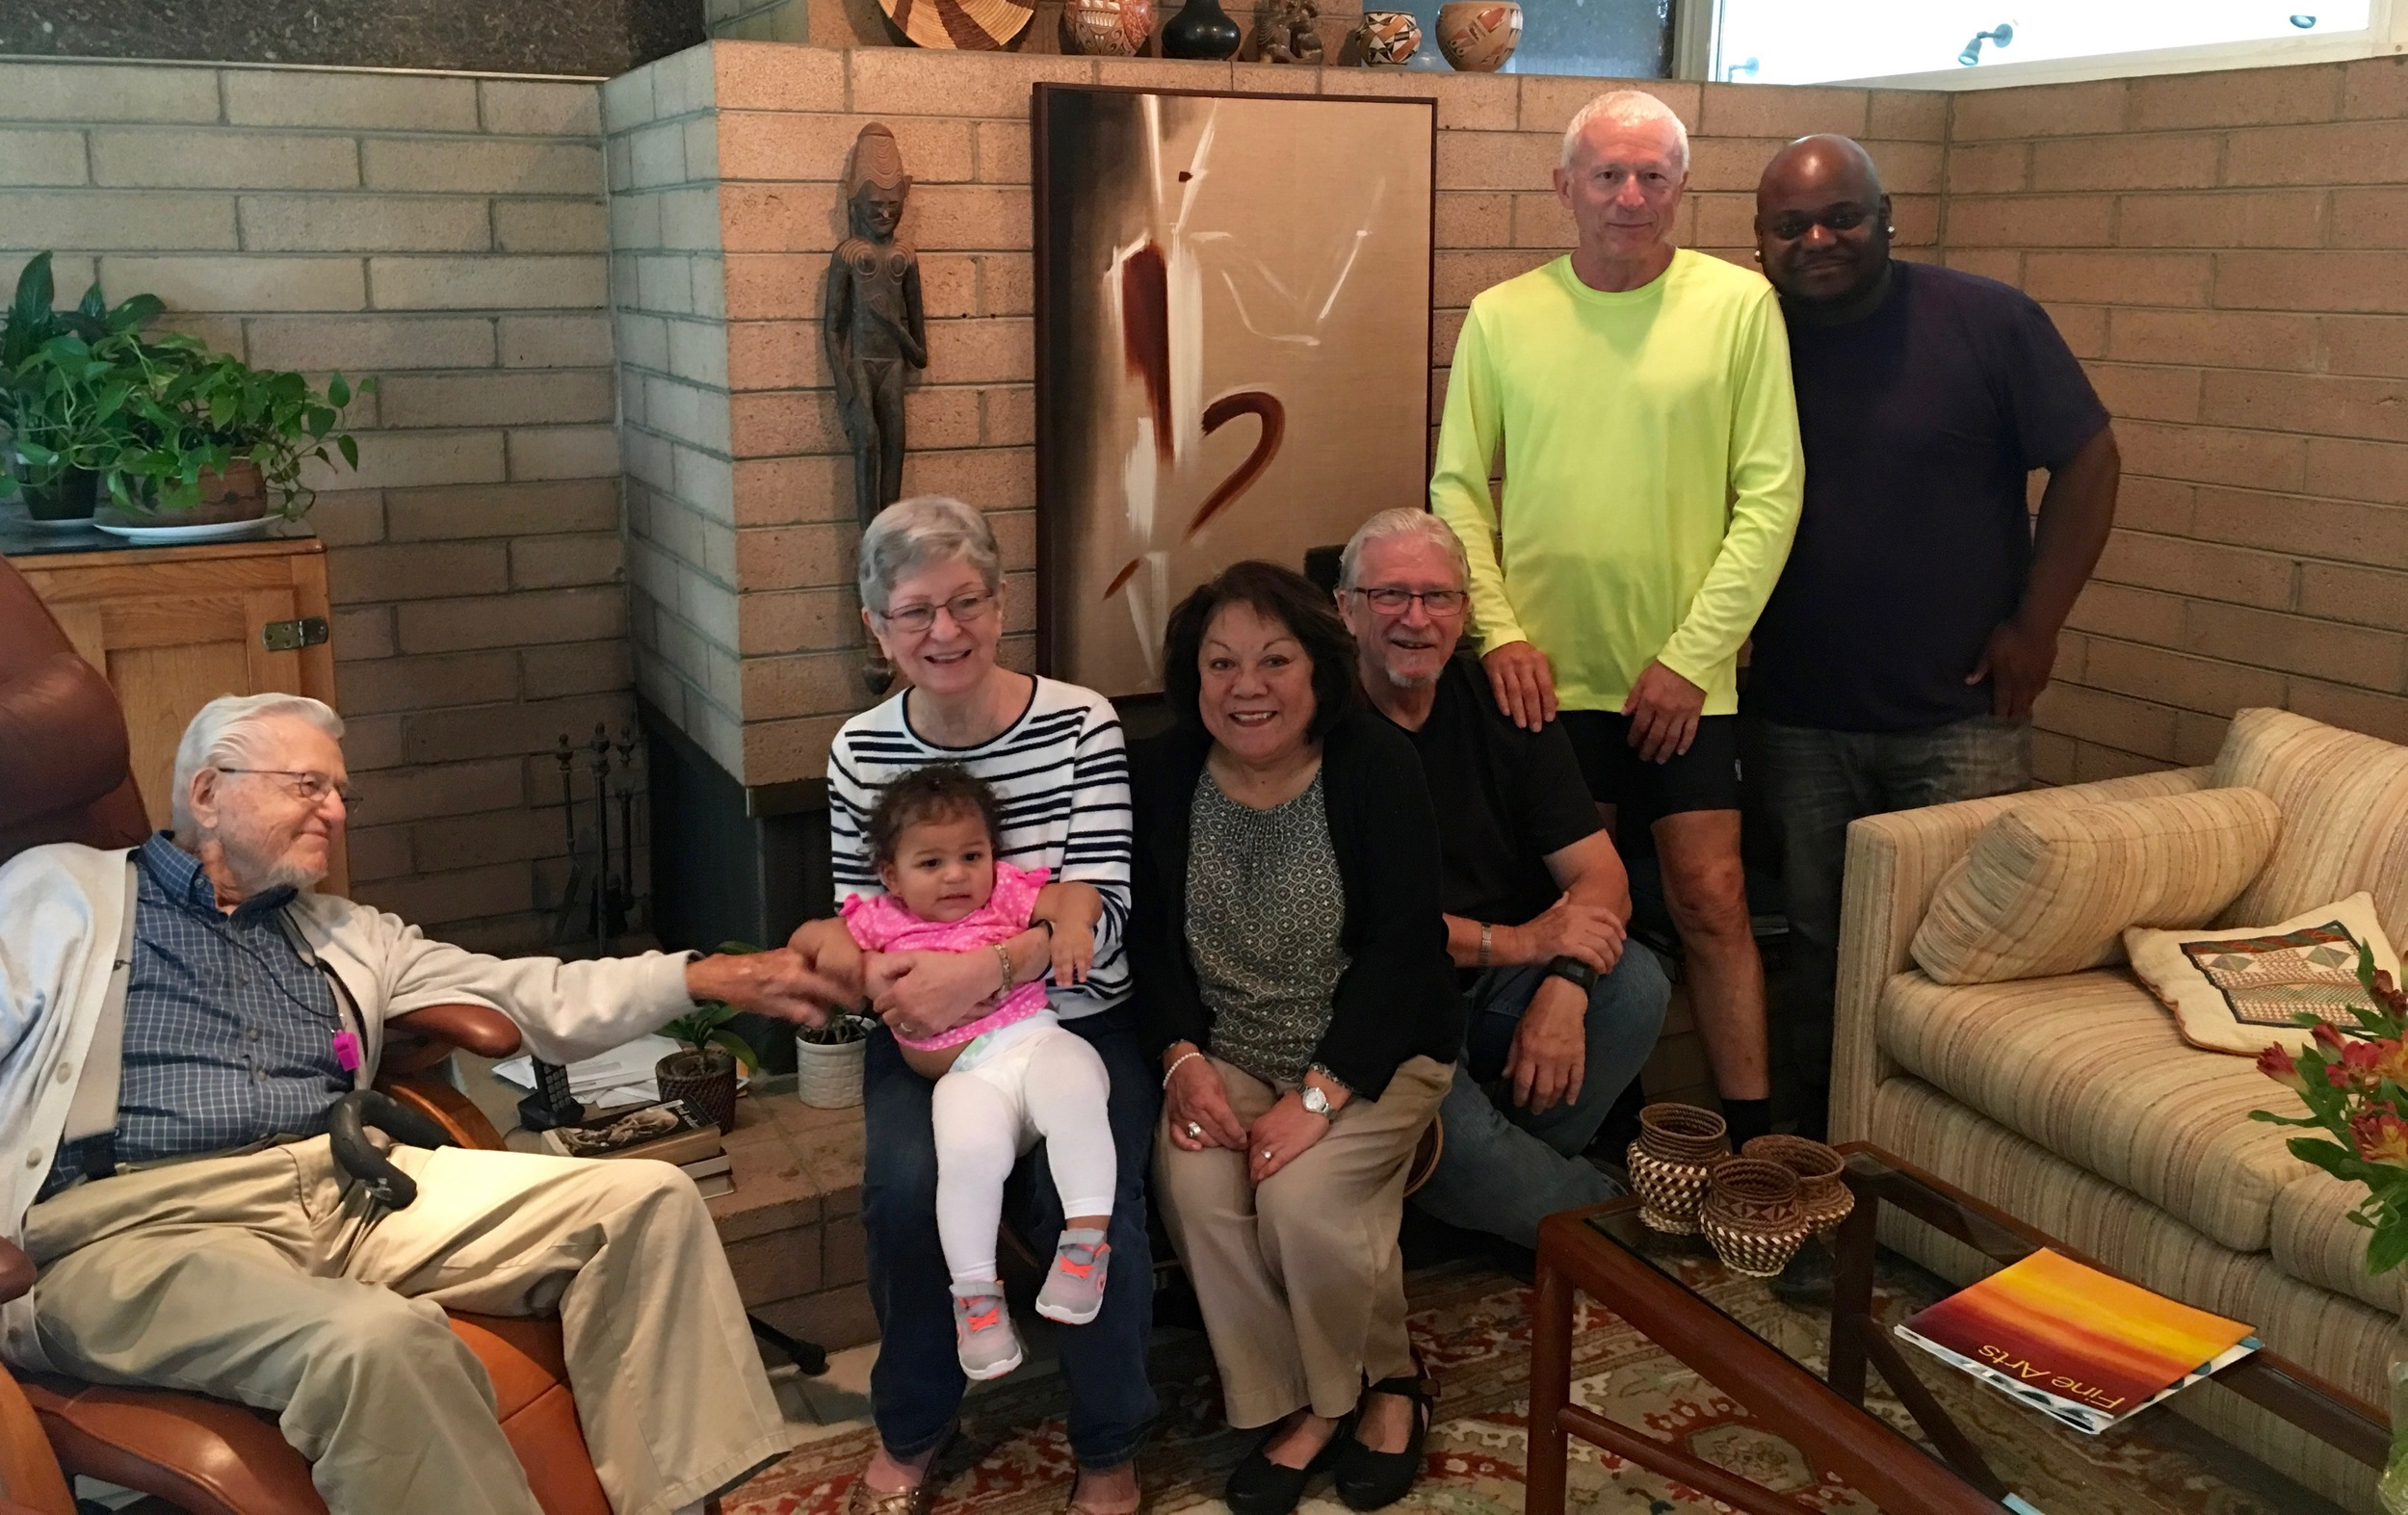 Great Grandparents, Grandfather, Great Aunt and Uncle, Dad.Missing is Mom -Beth, who took the picture.